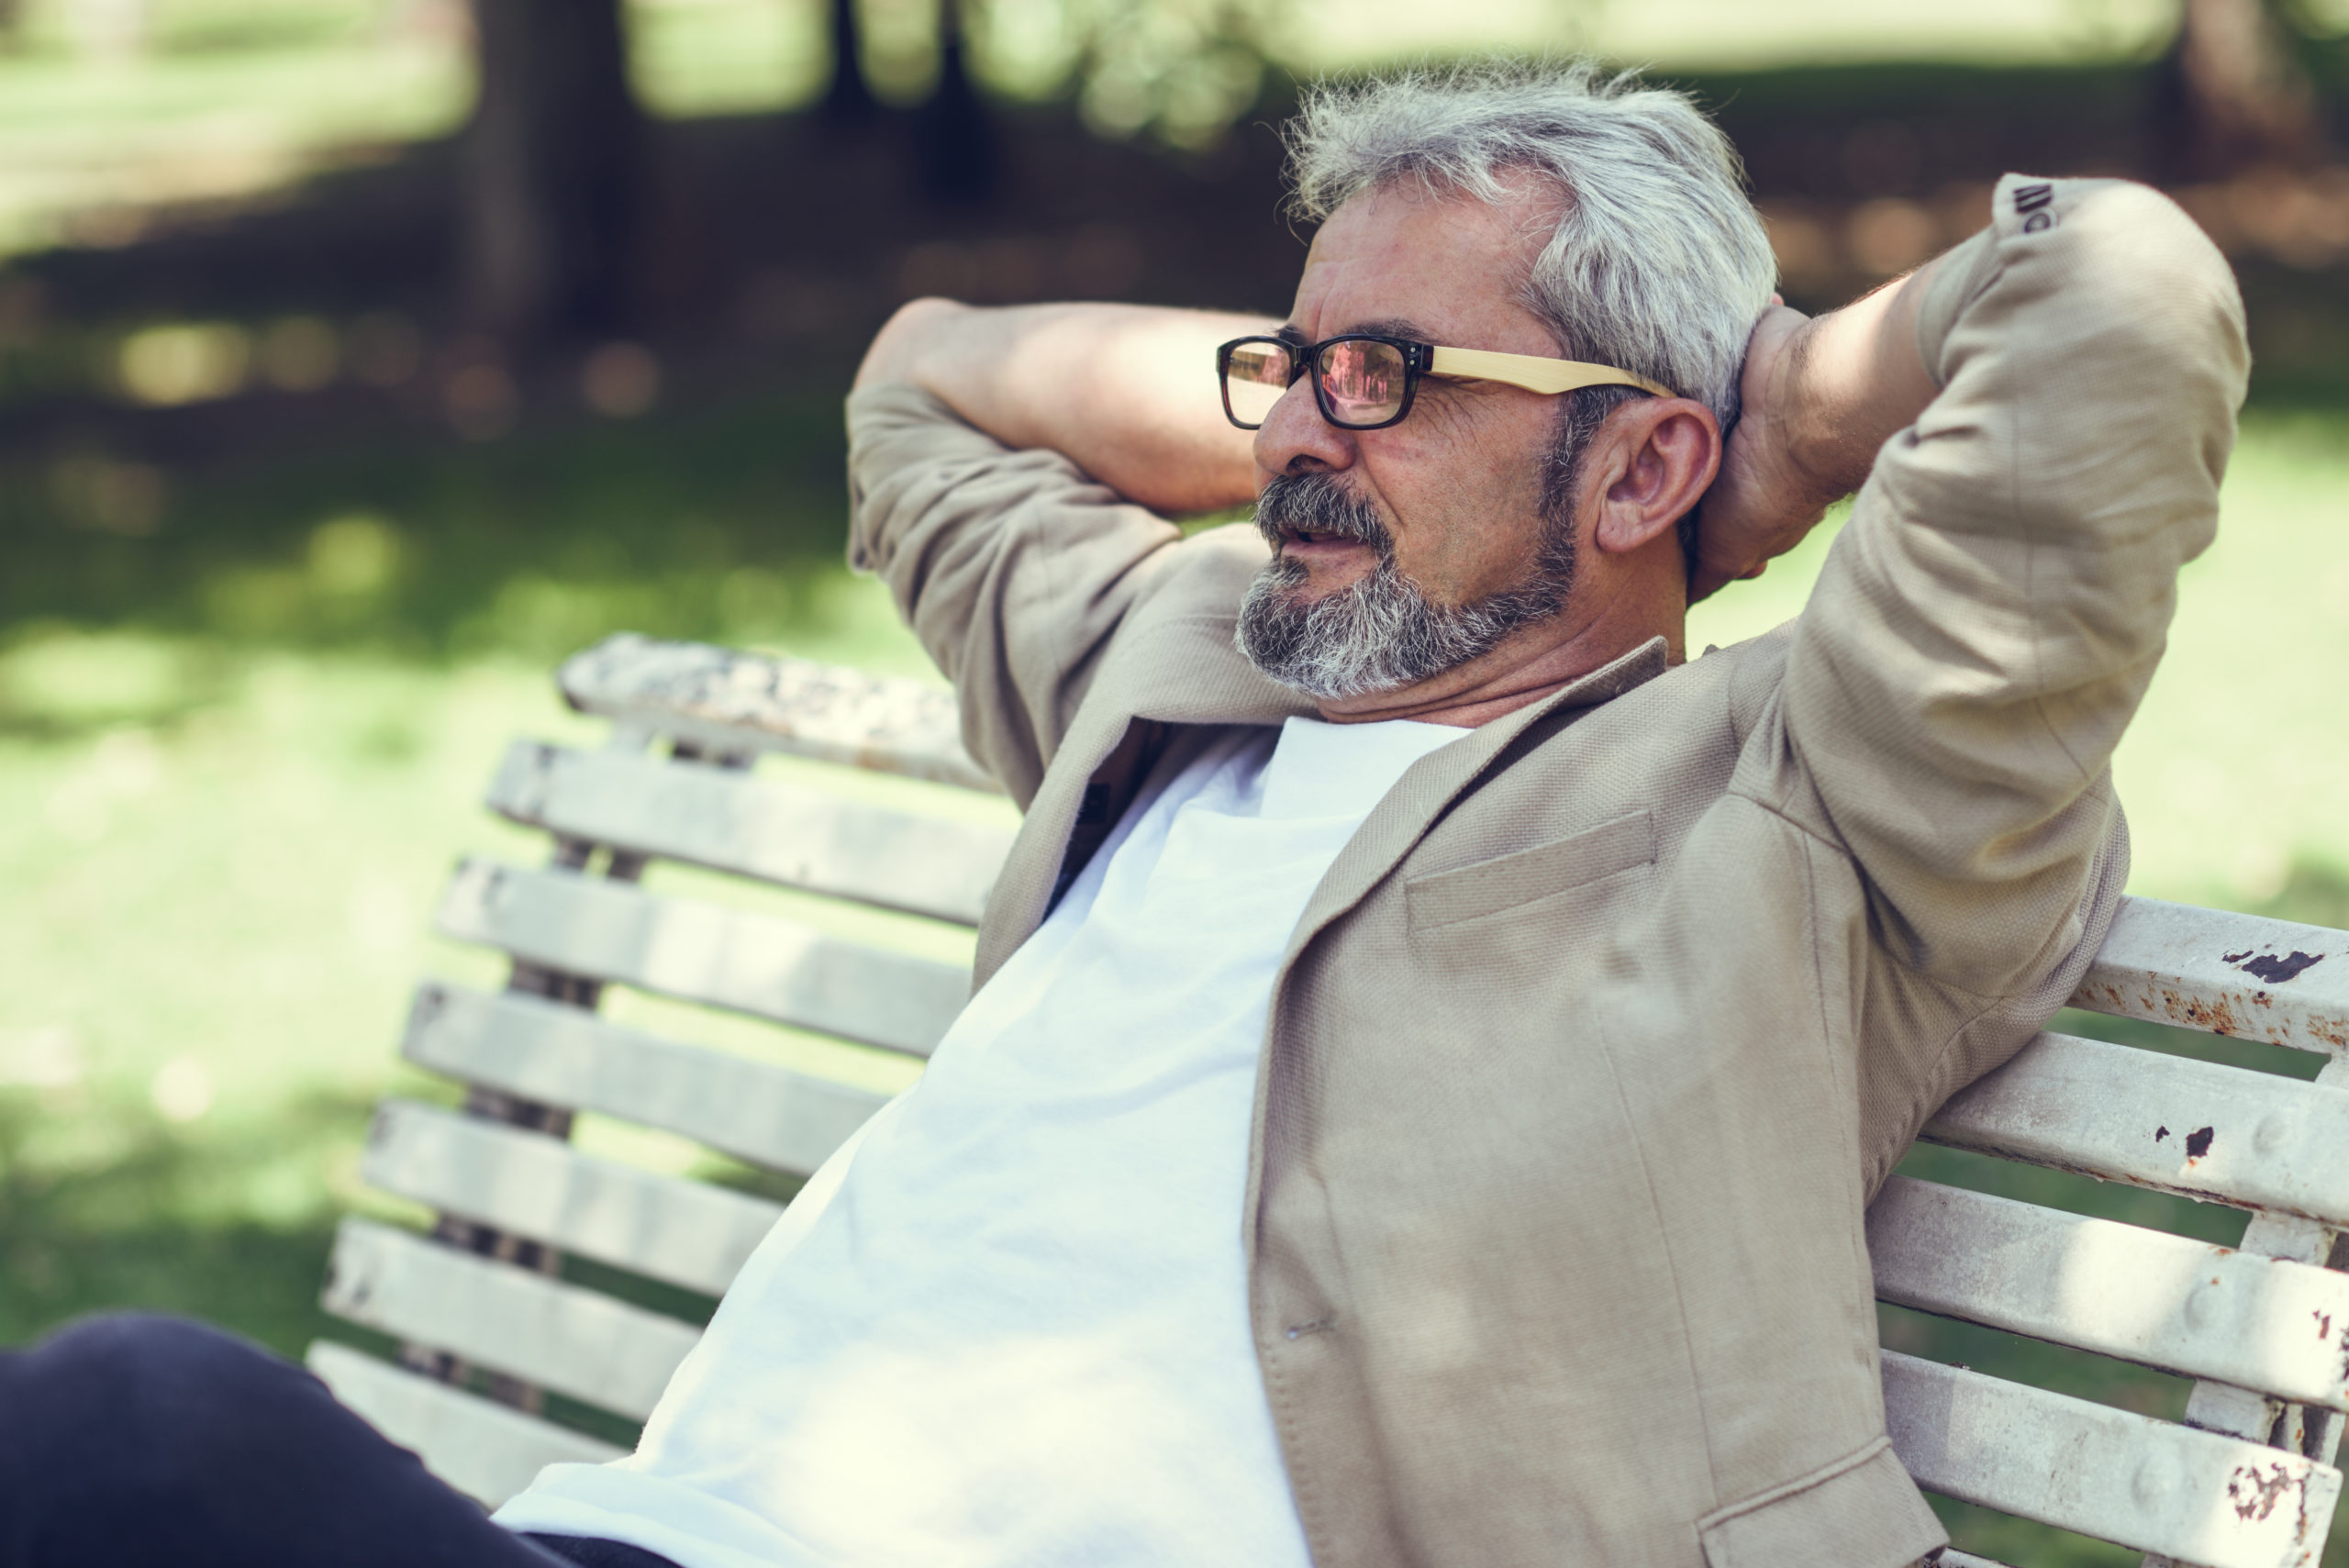 Mapping out a clear path for your investments at retirement